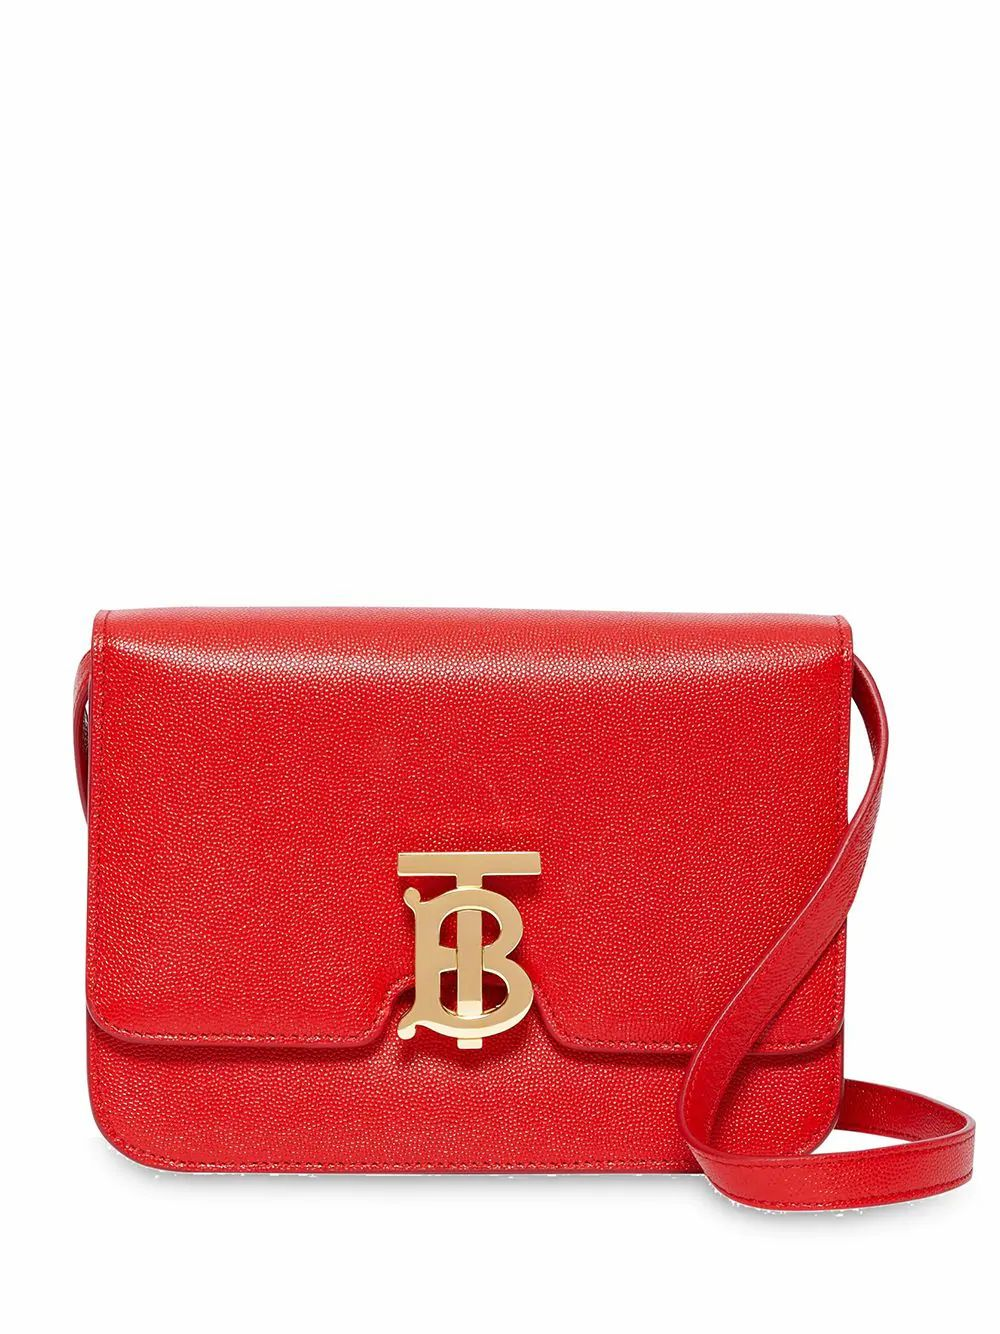 Burberry BURBERRY WOMEN'S 8019339 RED LEATHER SHOULDER BAG